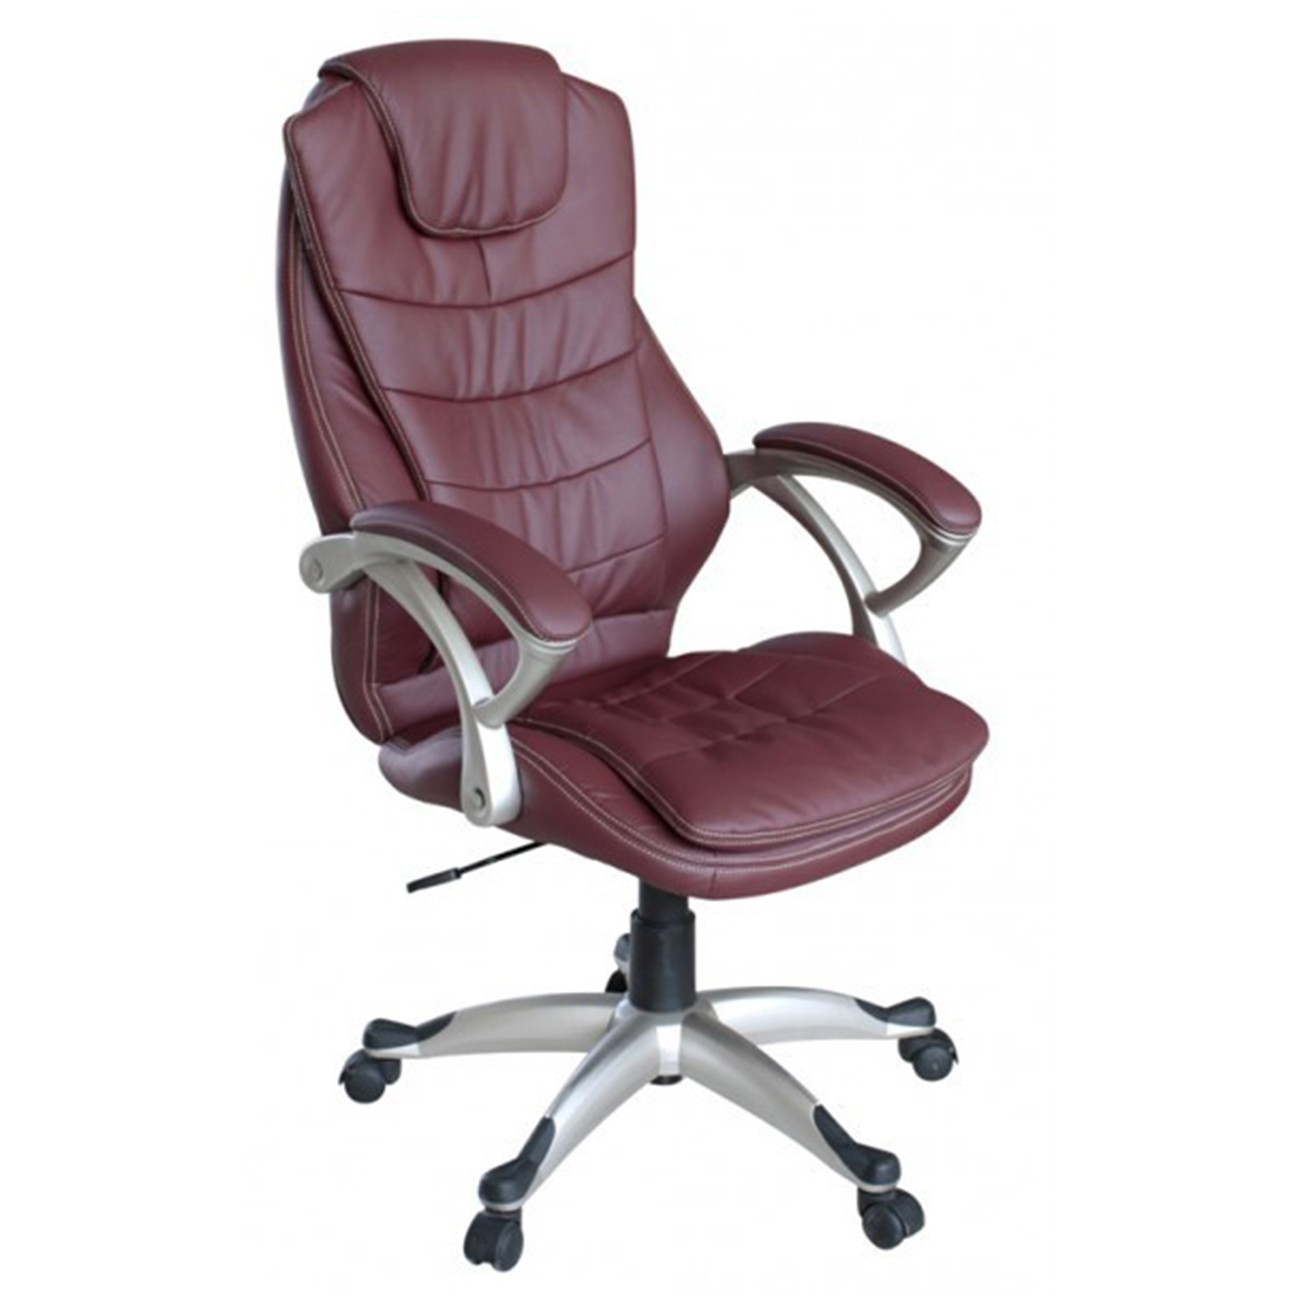 details about office chair executive computer desk adjustable armrest